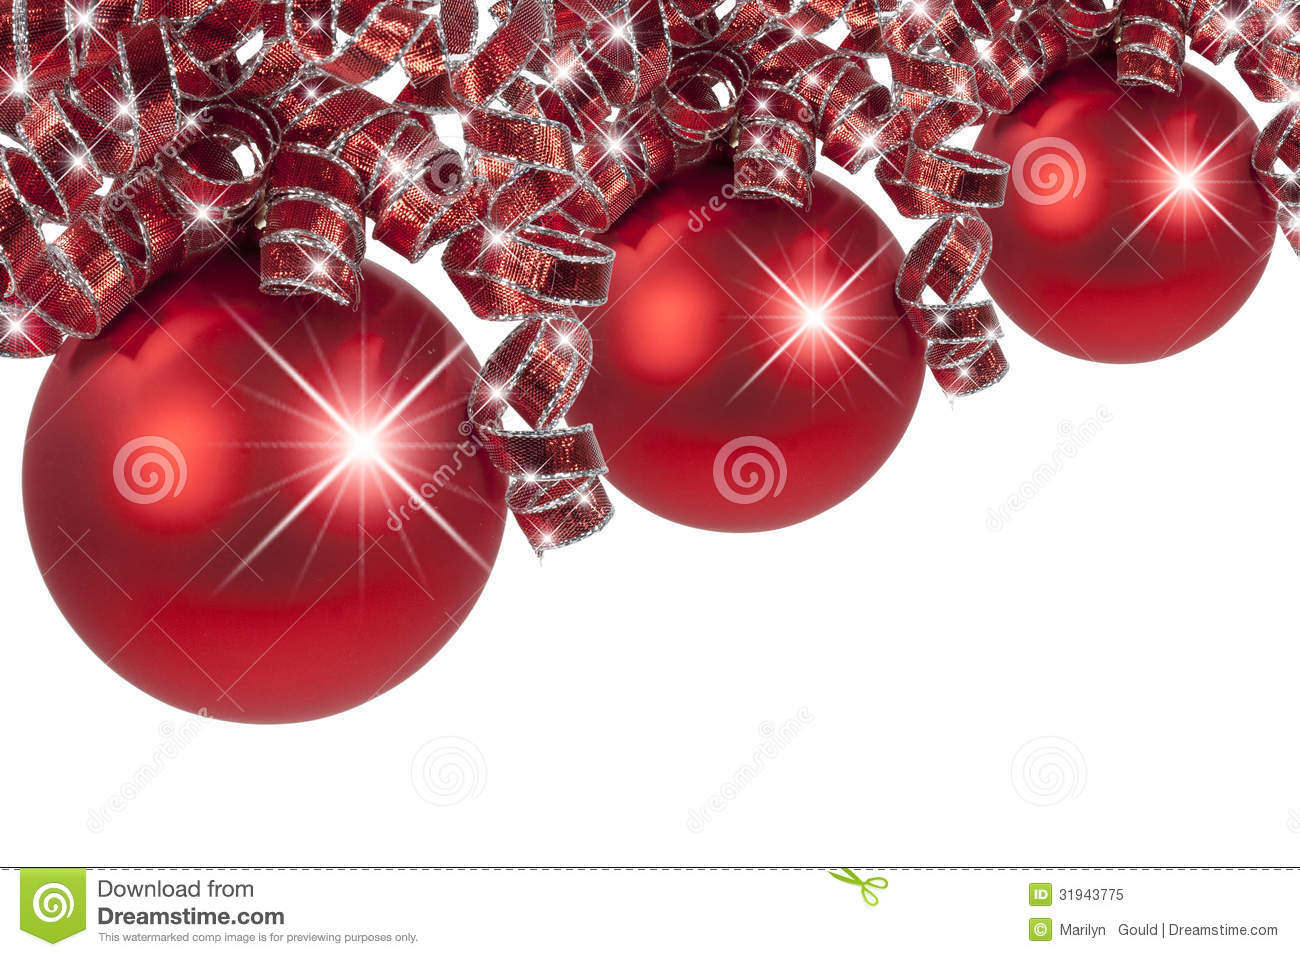 three red christmas ornaments with curly red and silver ribbons on white background - Red And Silver Christmas Ornaments